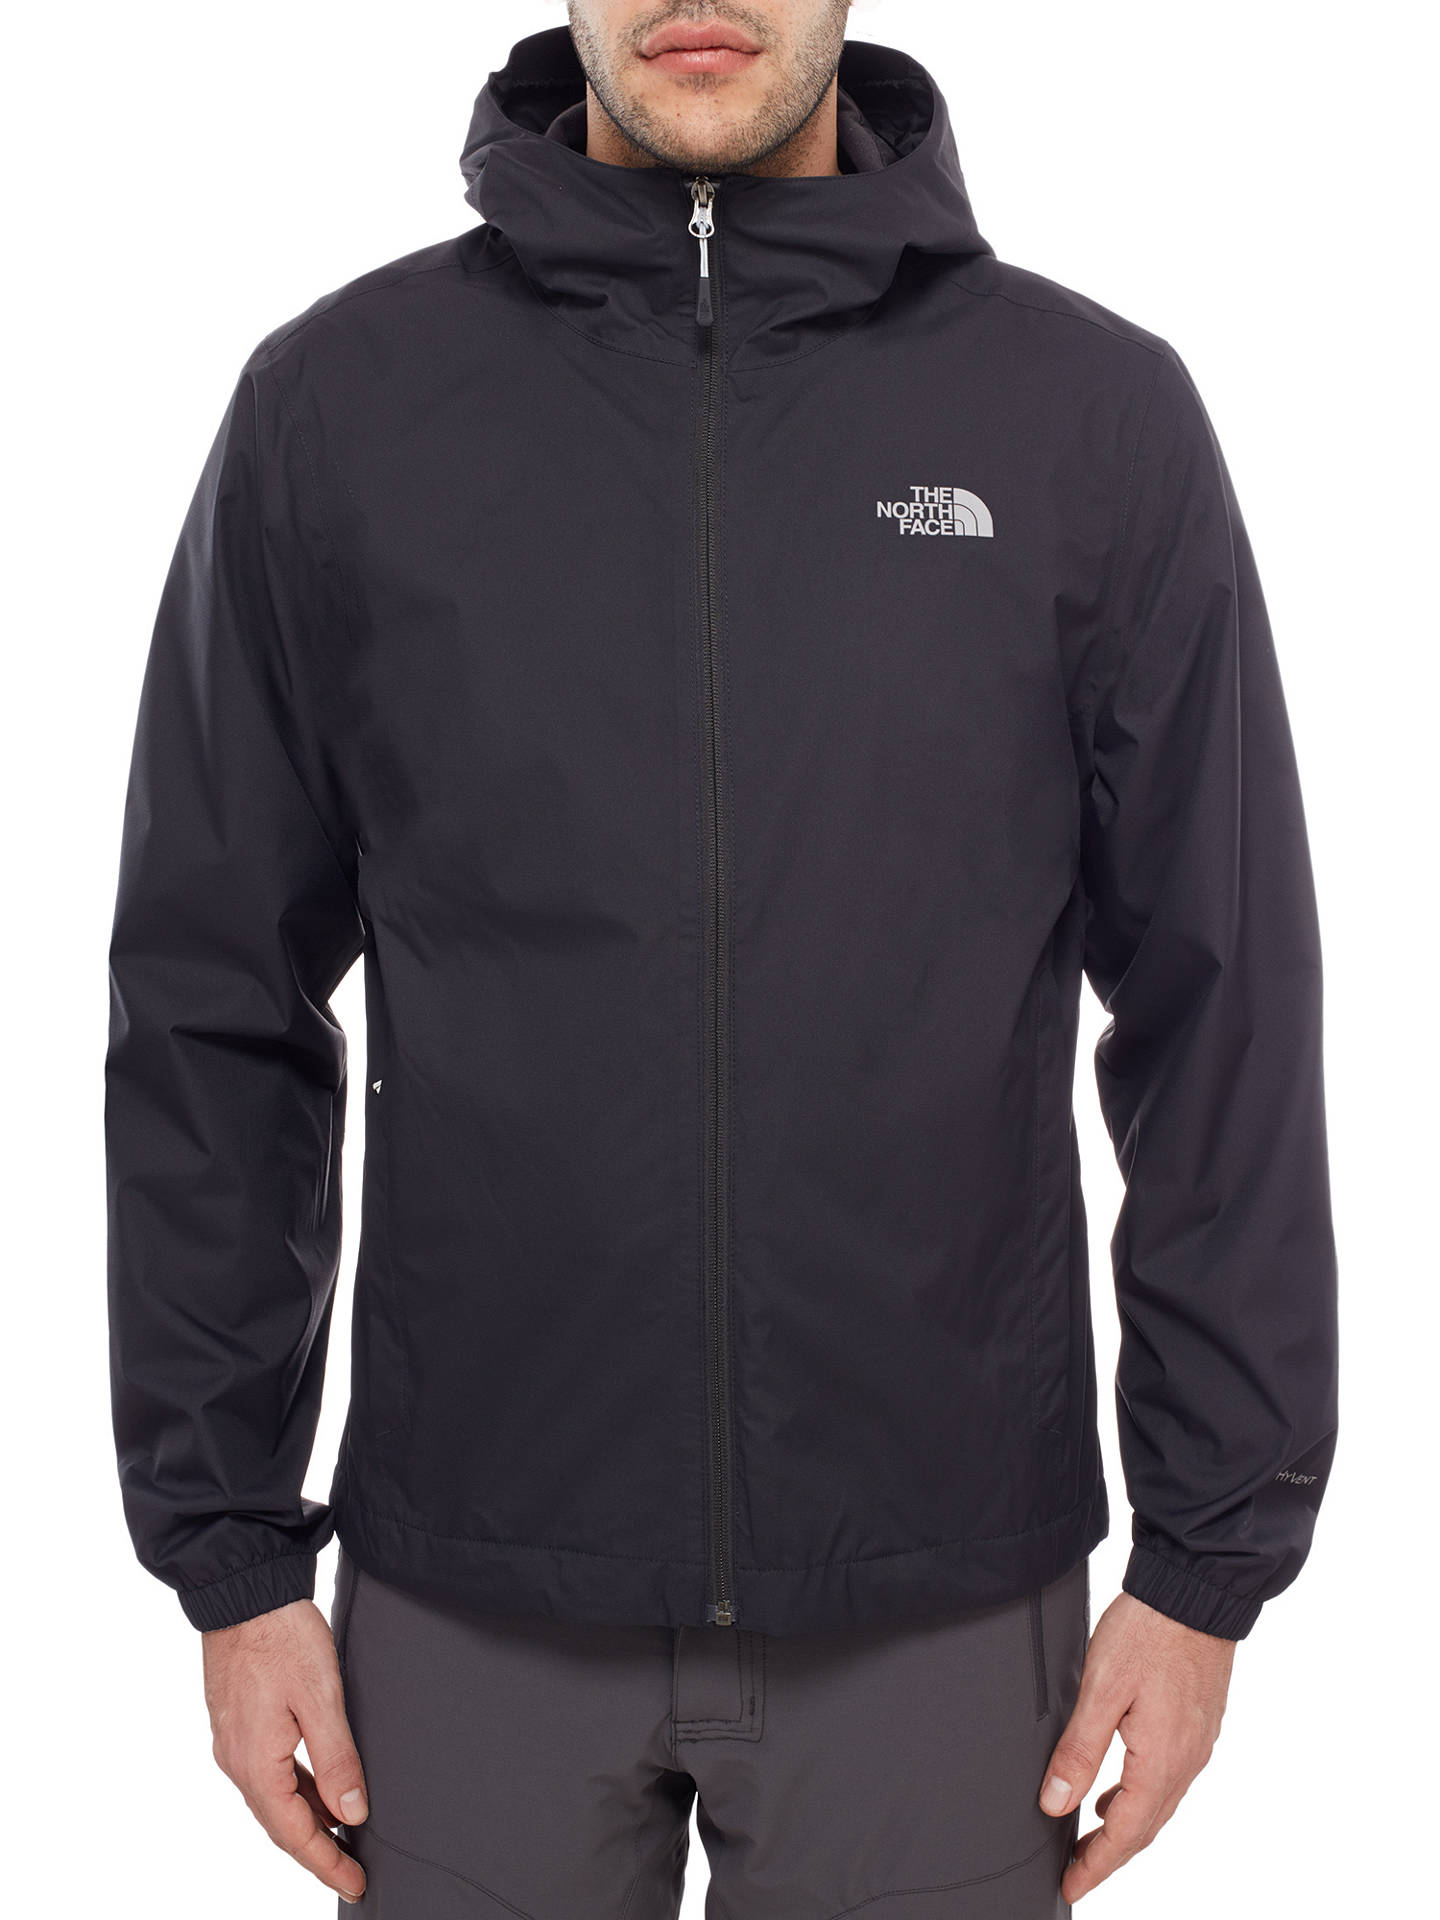 5318b3f3f The North Face Quest Waterproof Men's Jacket, Black